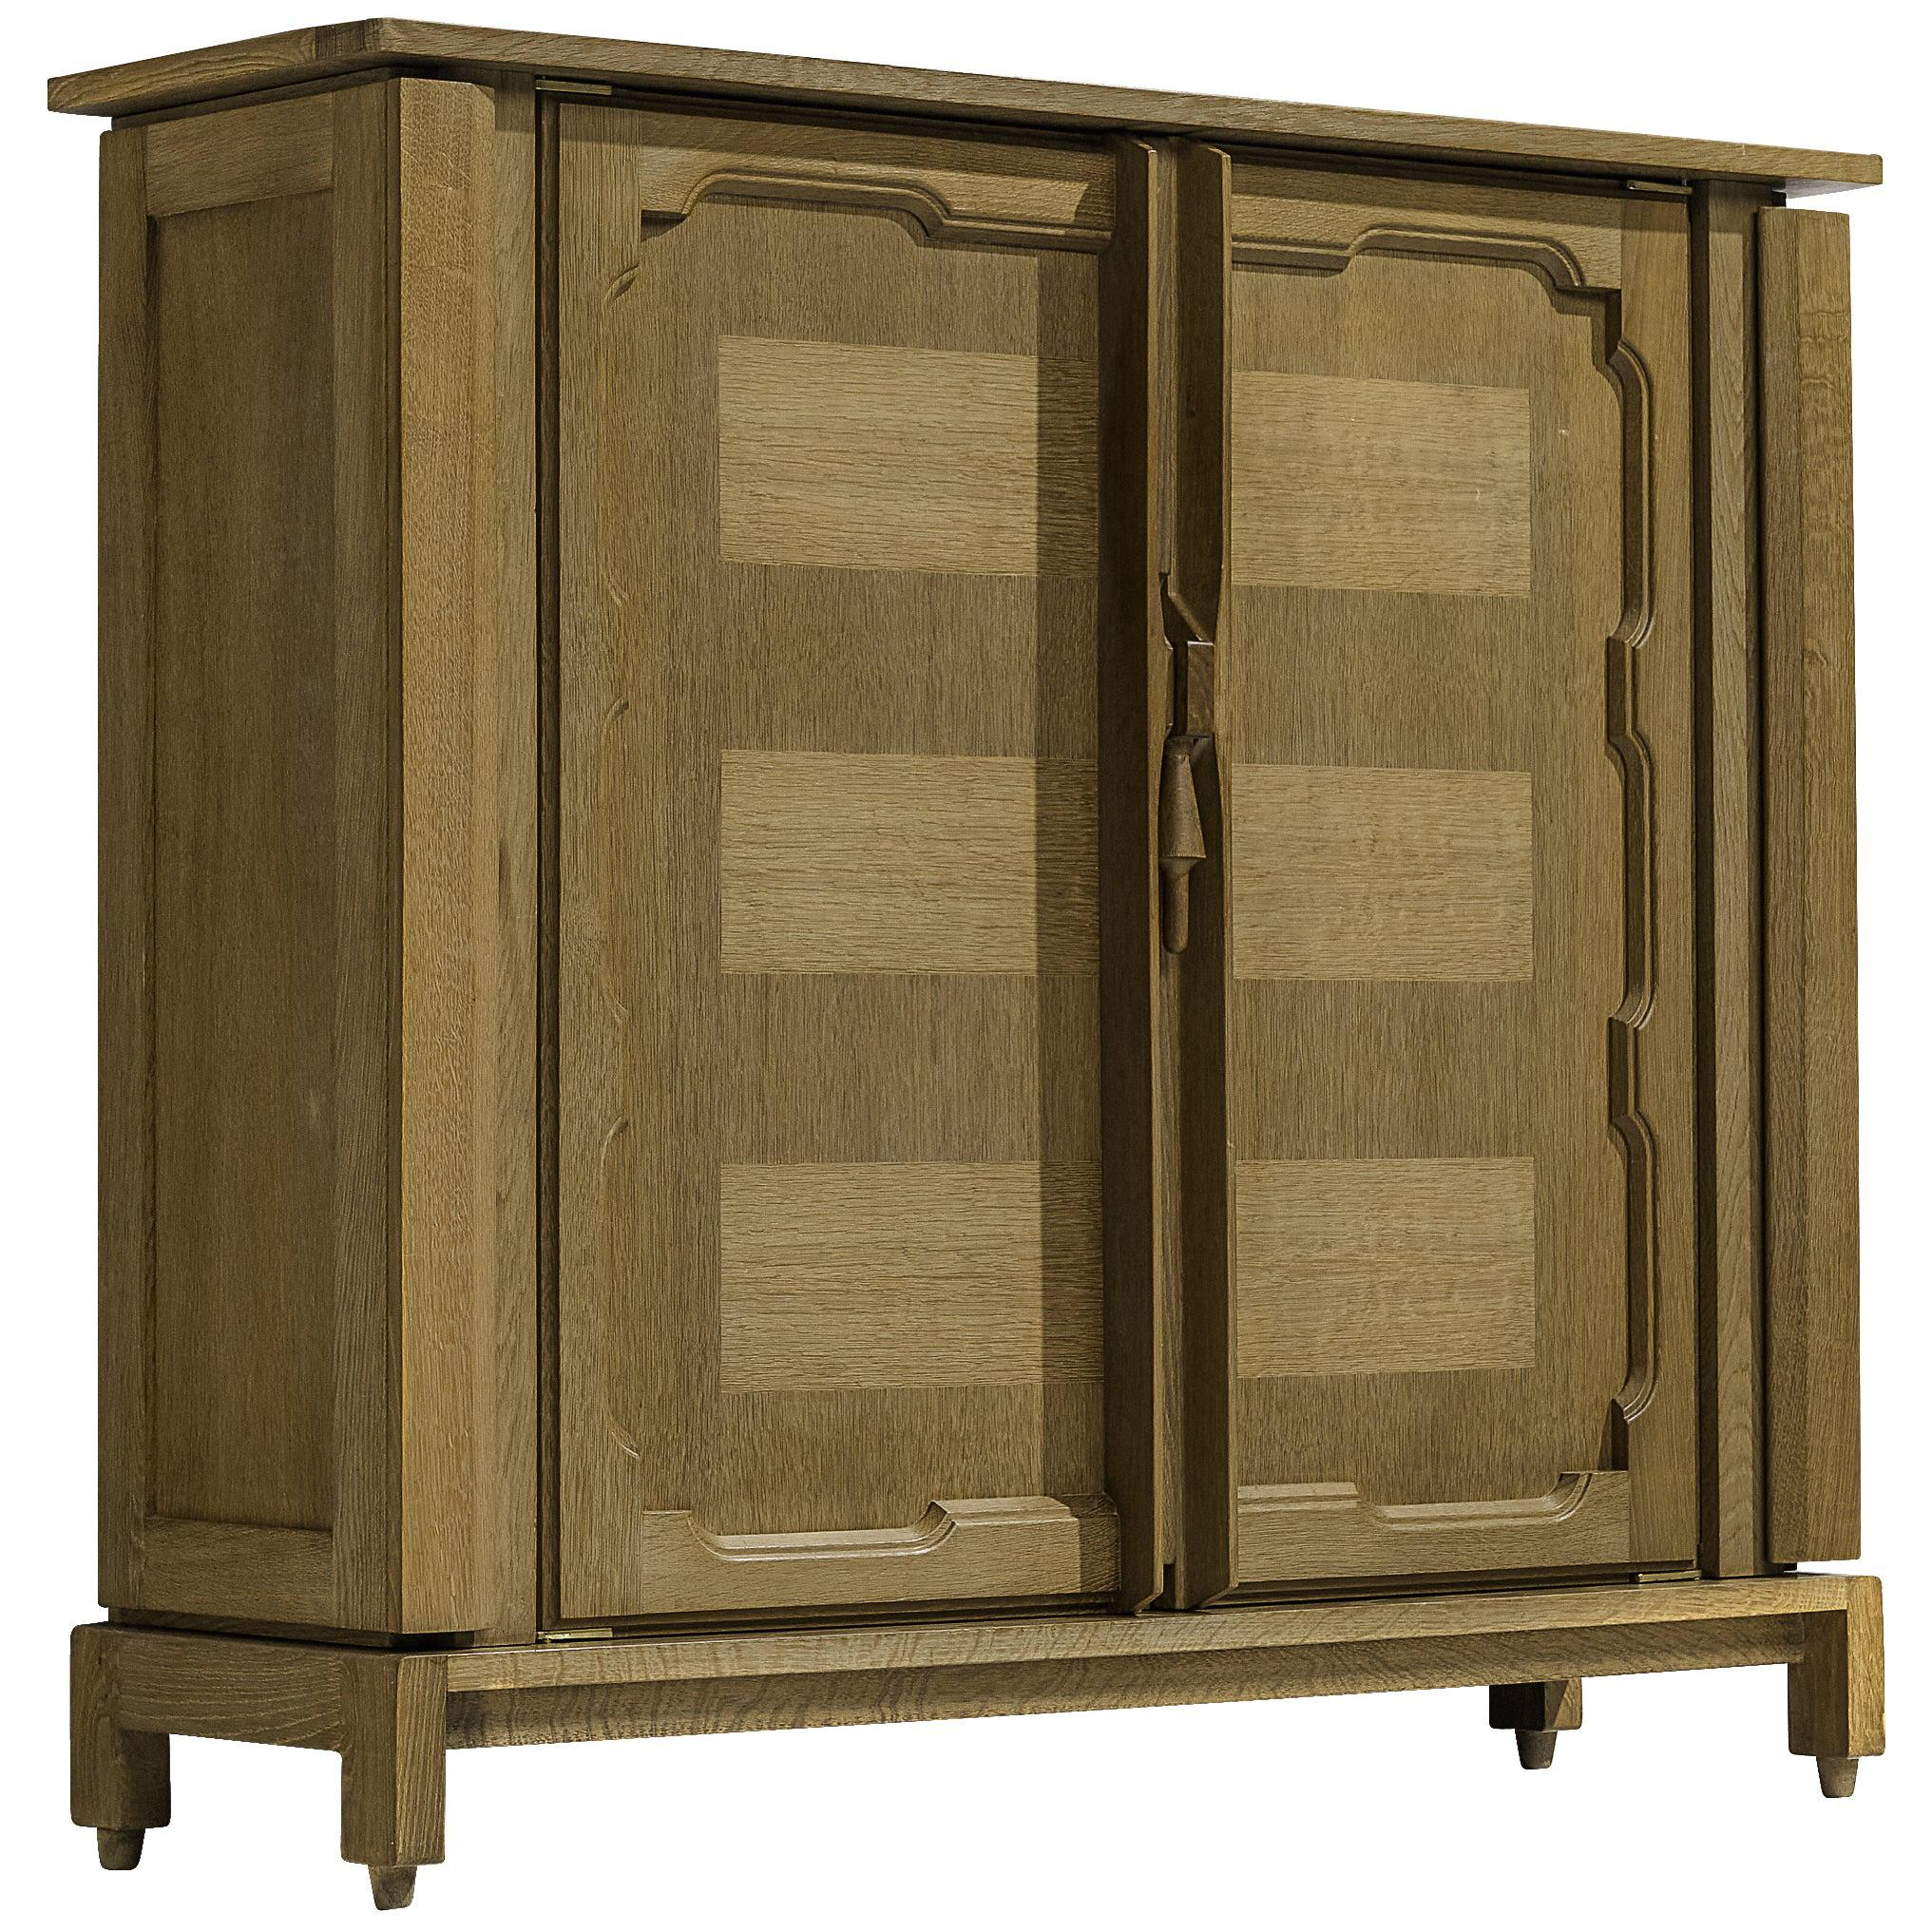 Guillerme et Chambron Cabinet in Green Stained Oak